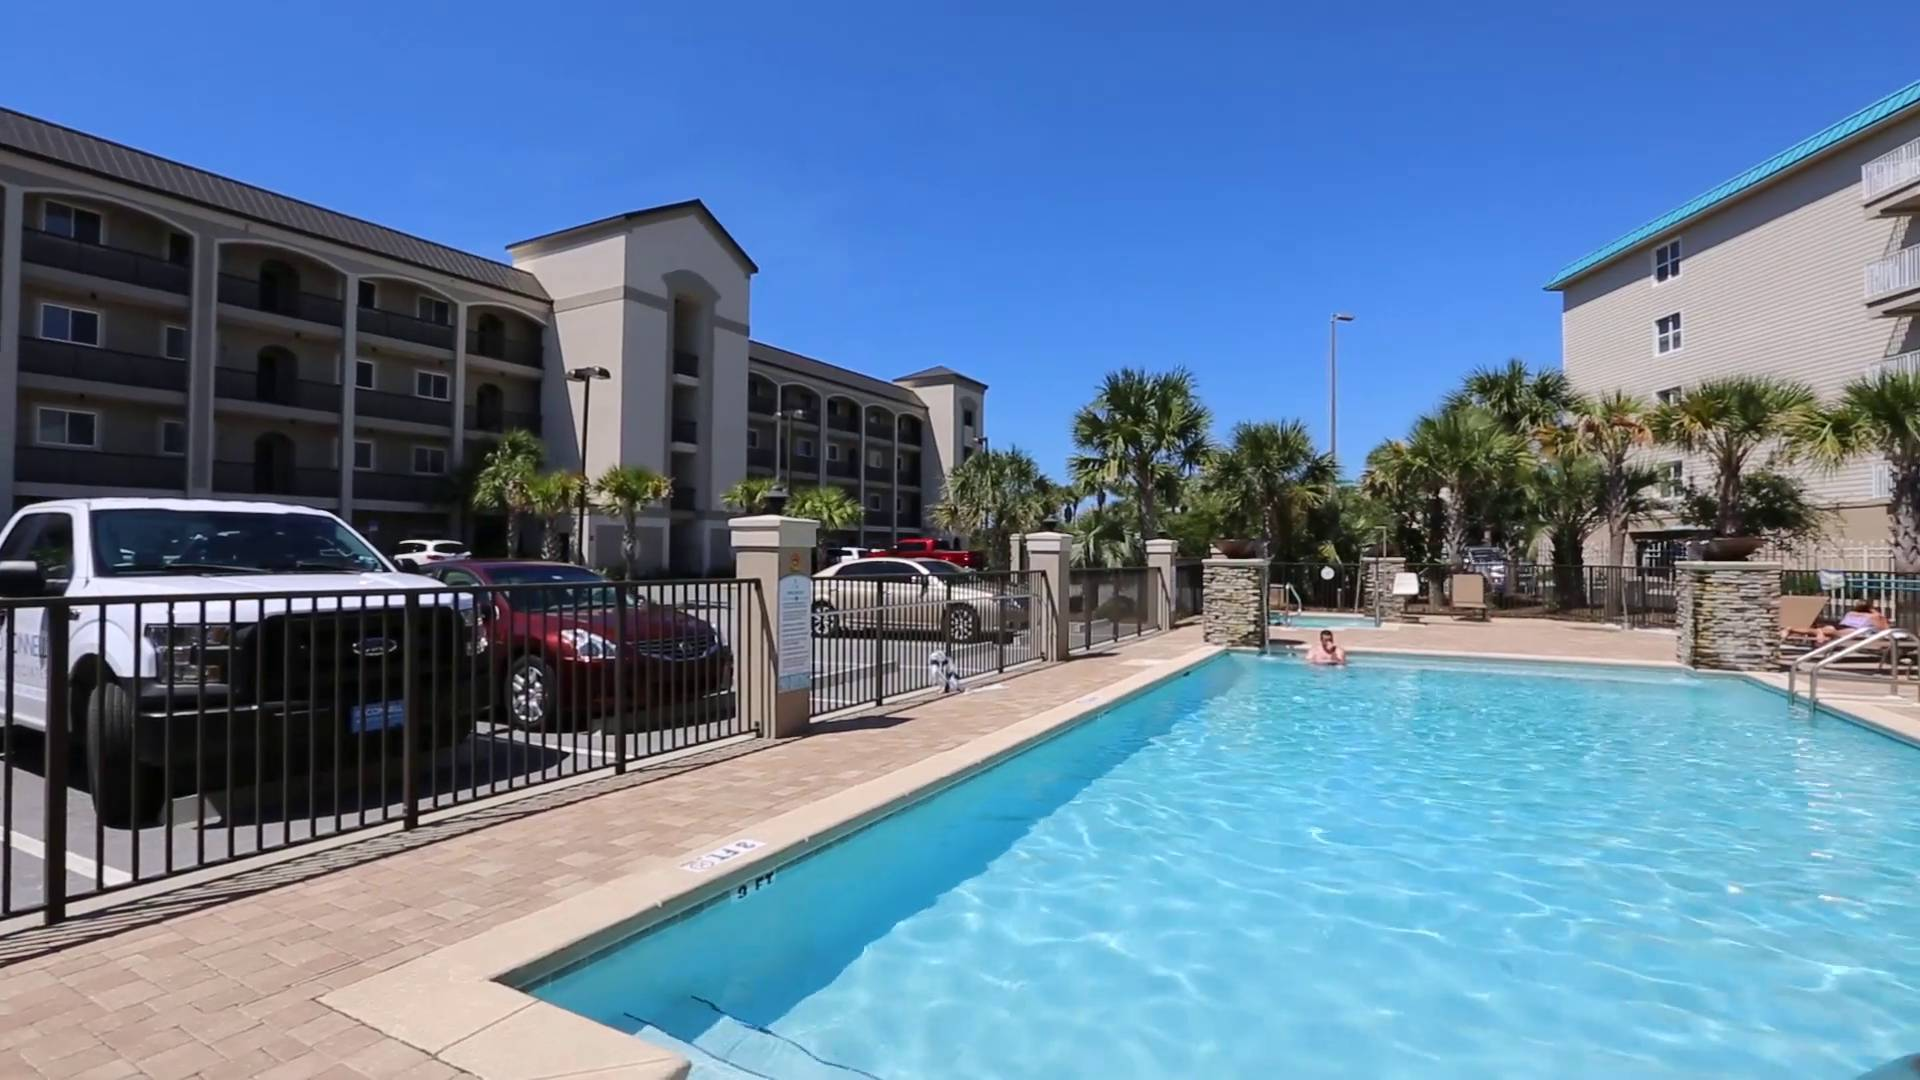 fl sale panama pre okaloosa cottages island destin nantucket for condos in city construction beach and